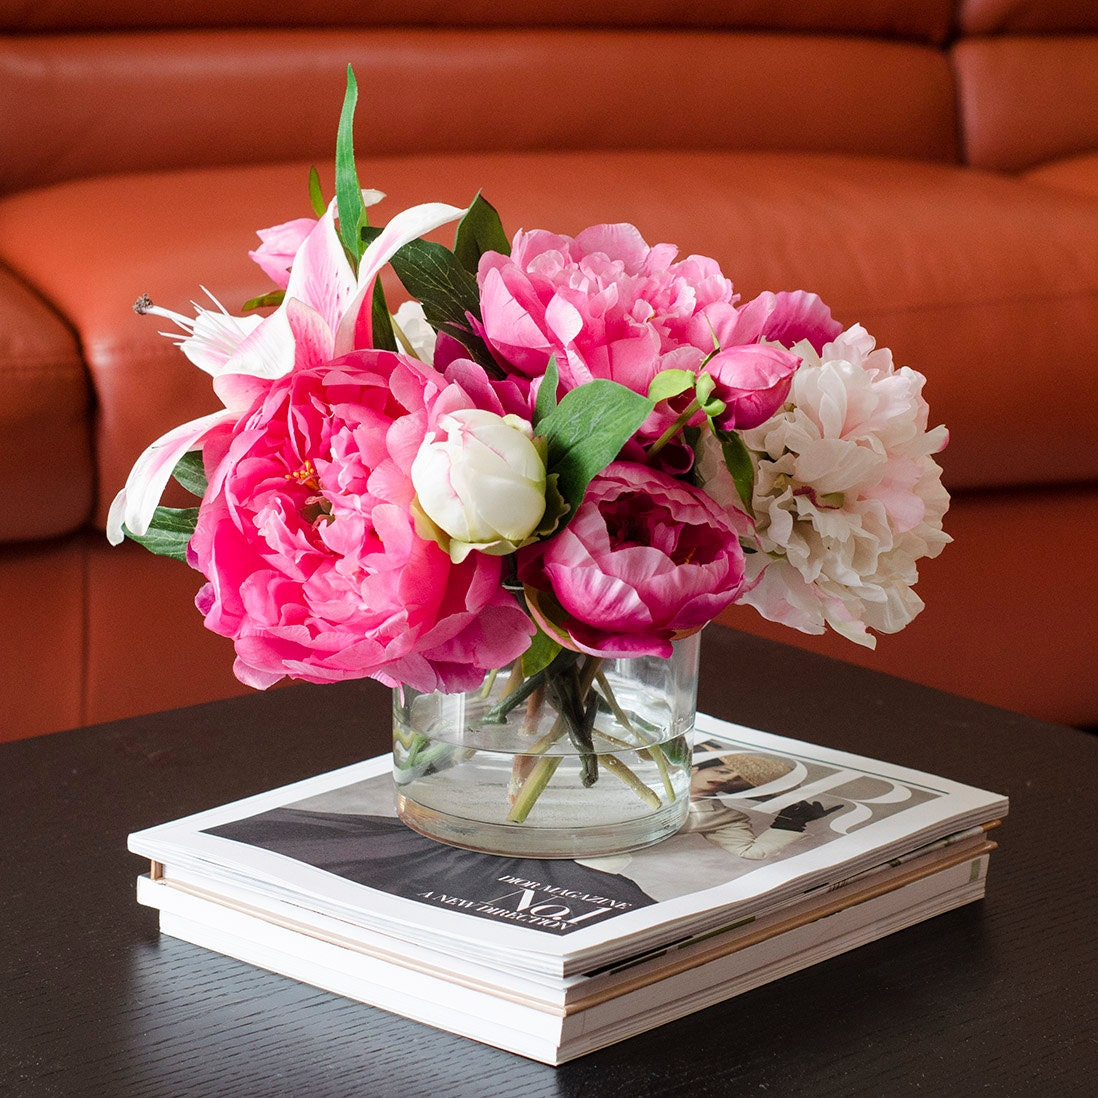 Flash Sale 85usd Was 135 Usd Large Peonies Casablanca Lilies Arrangement Fuchsia Pink Peonies